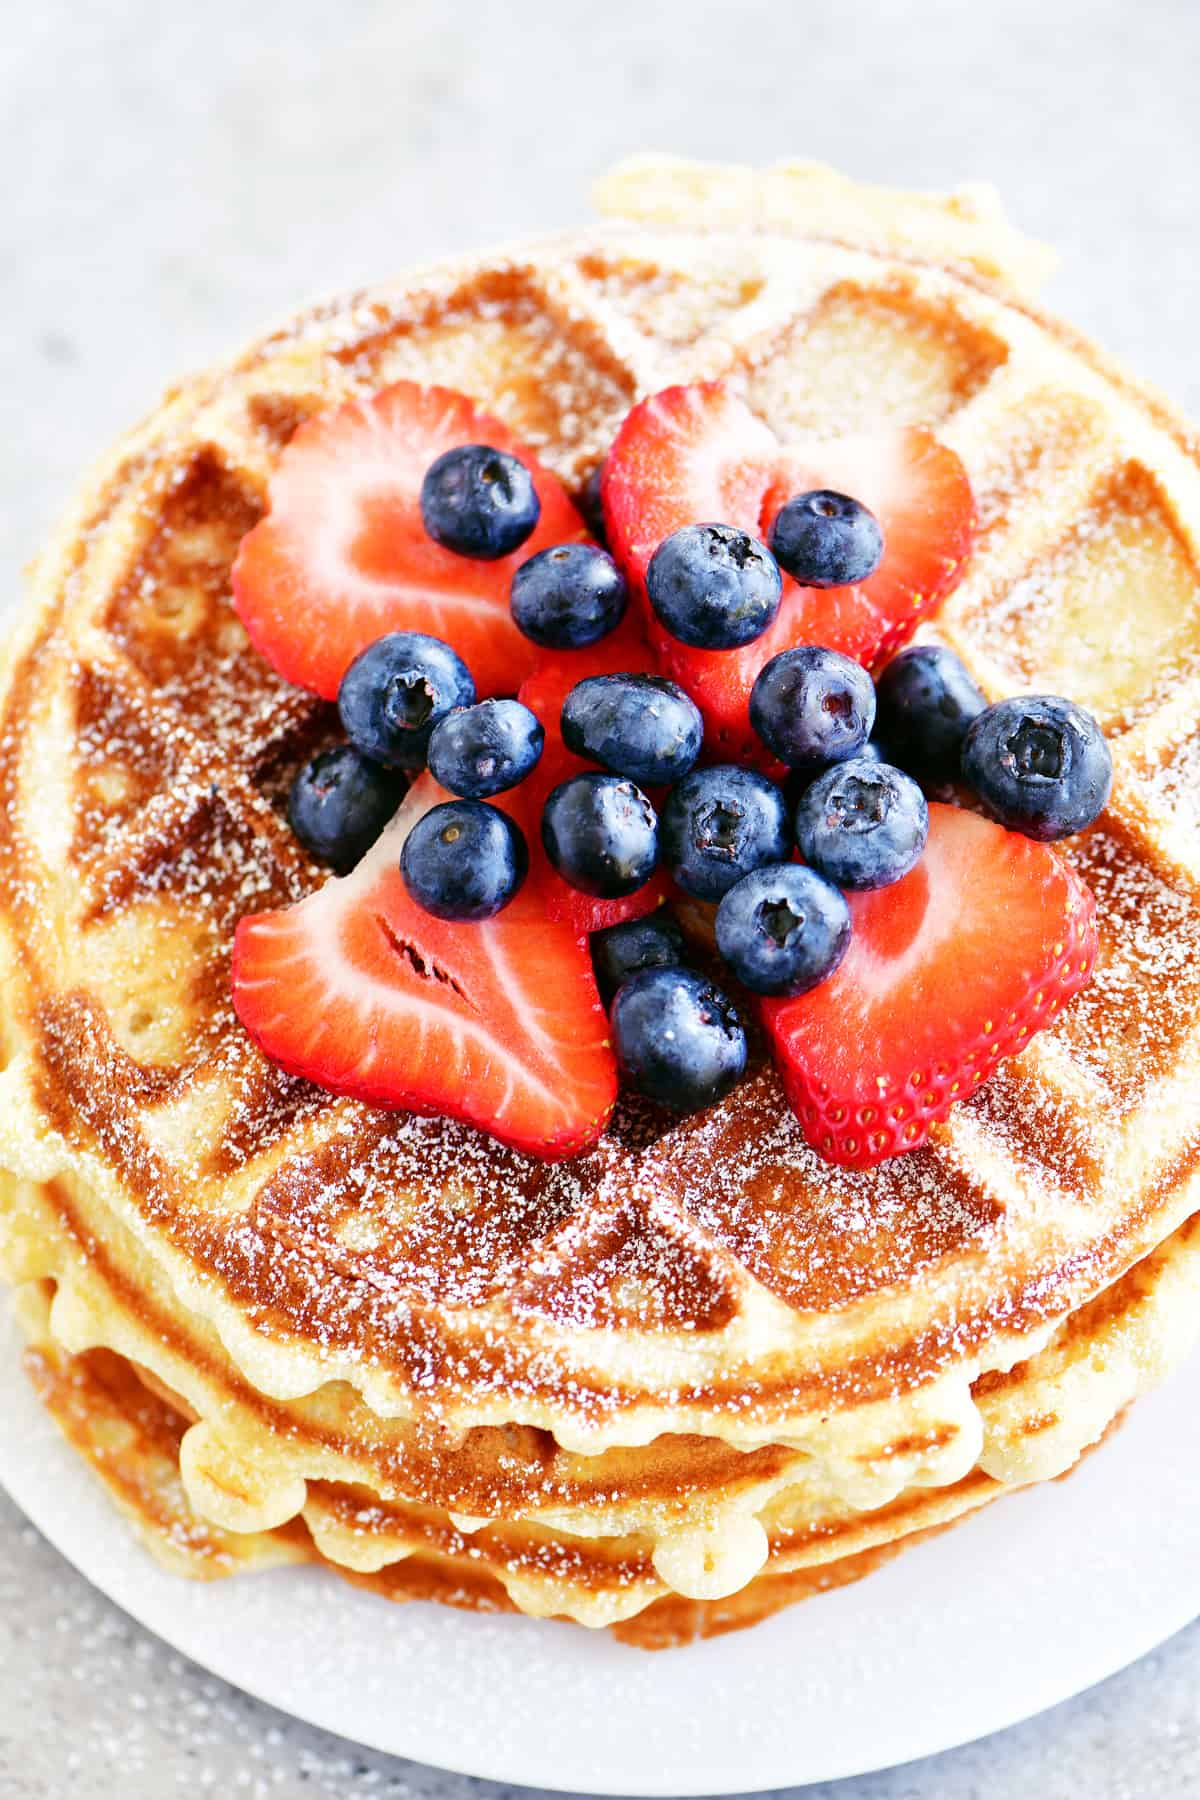 blueberries and strawberries on a stack of waffles